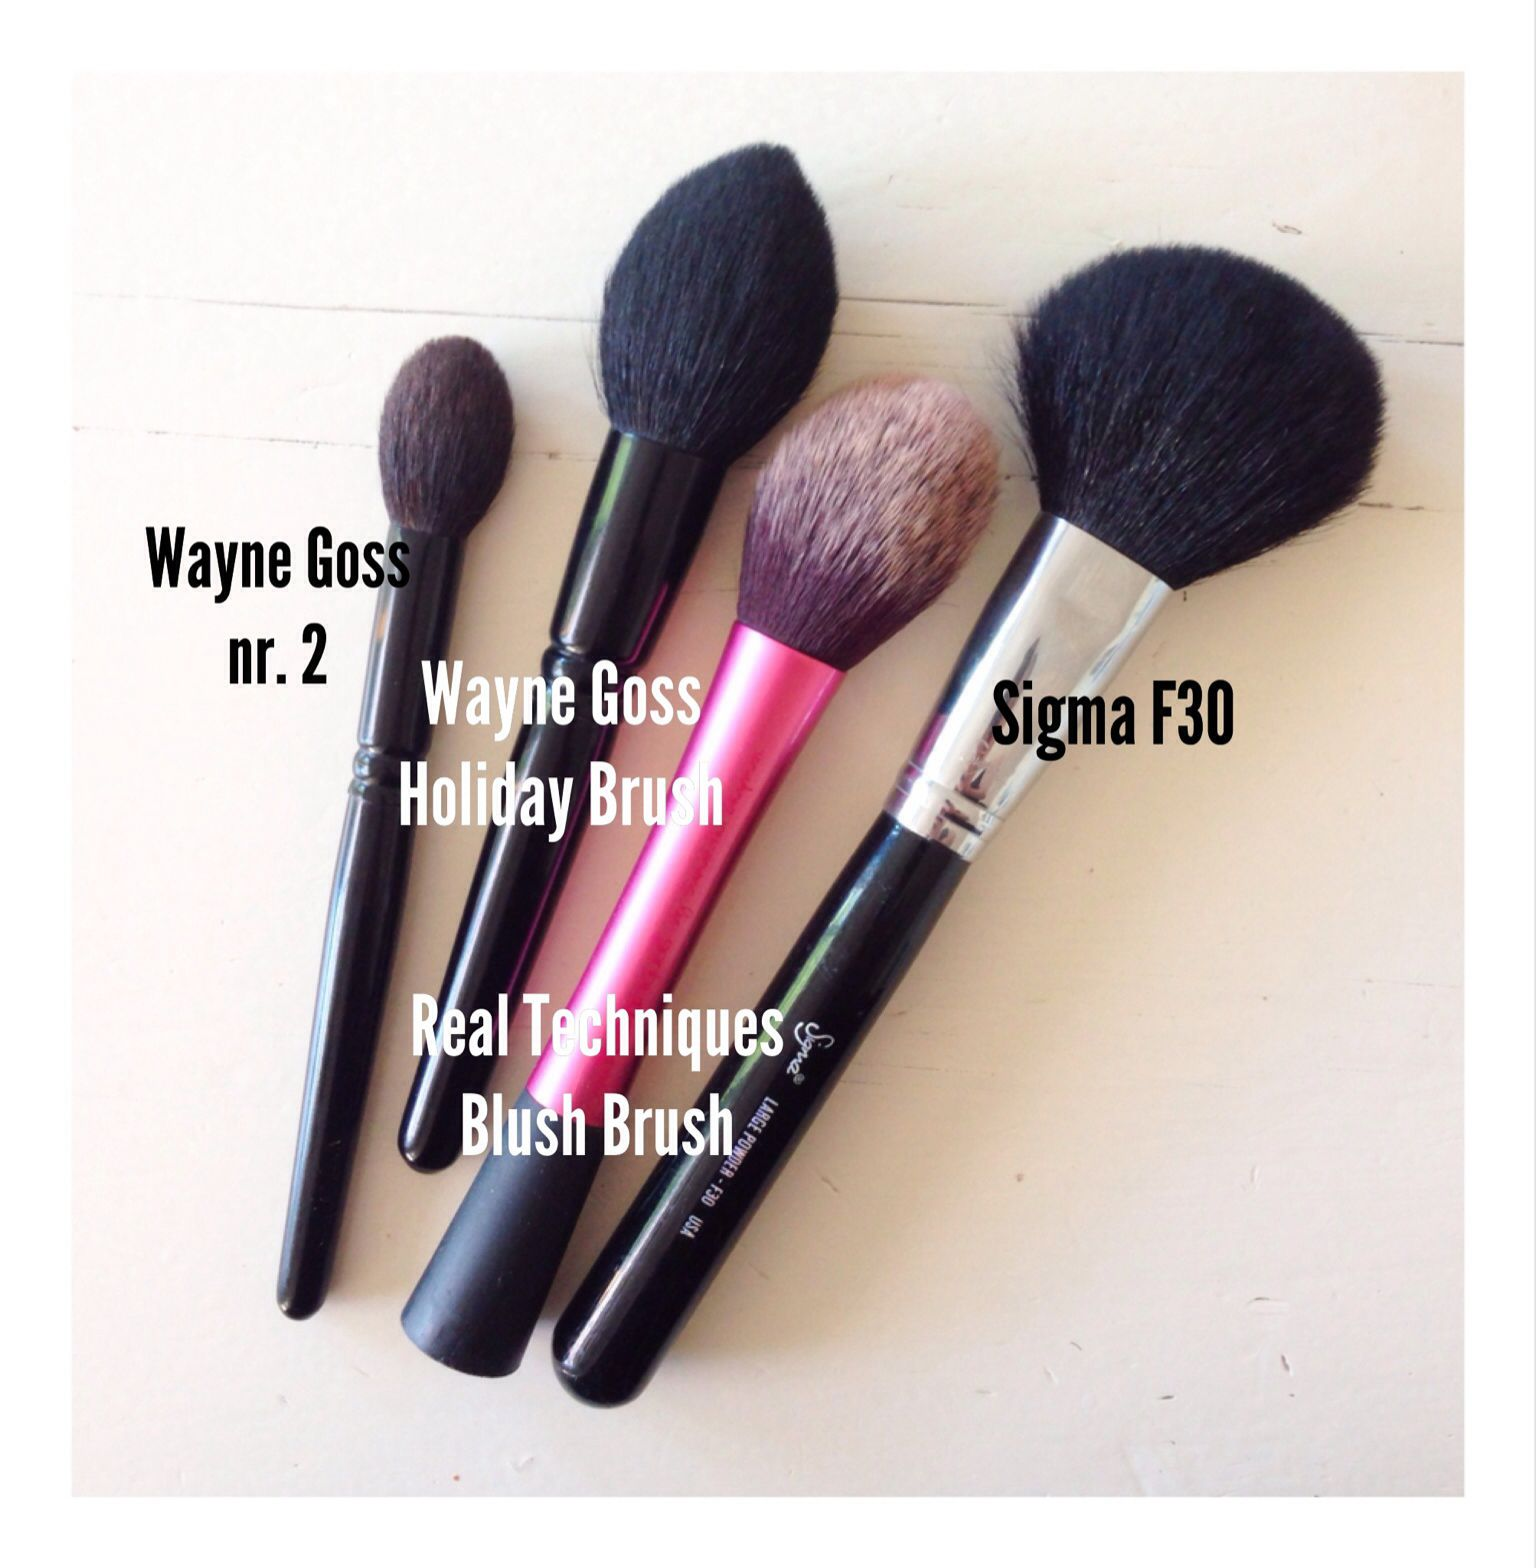 Wayne Goss, Real Techniques and Sigma face brushes